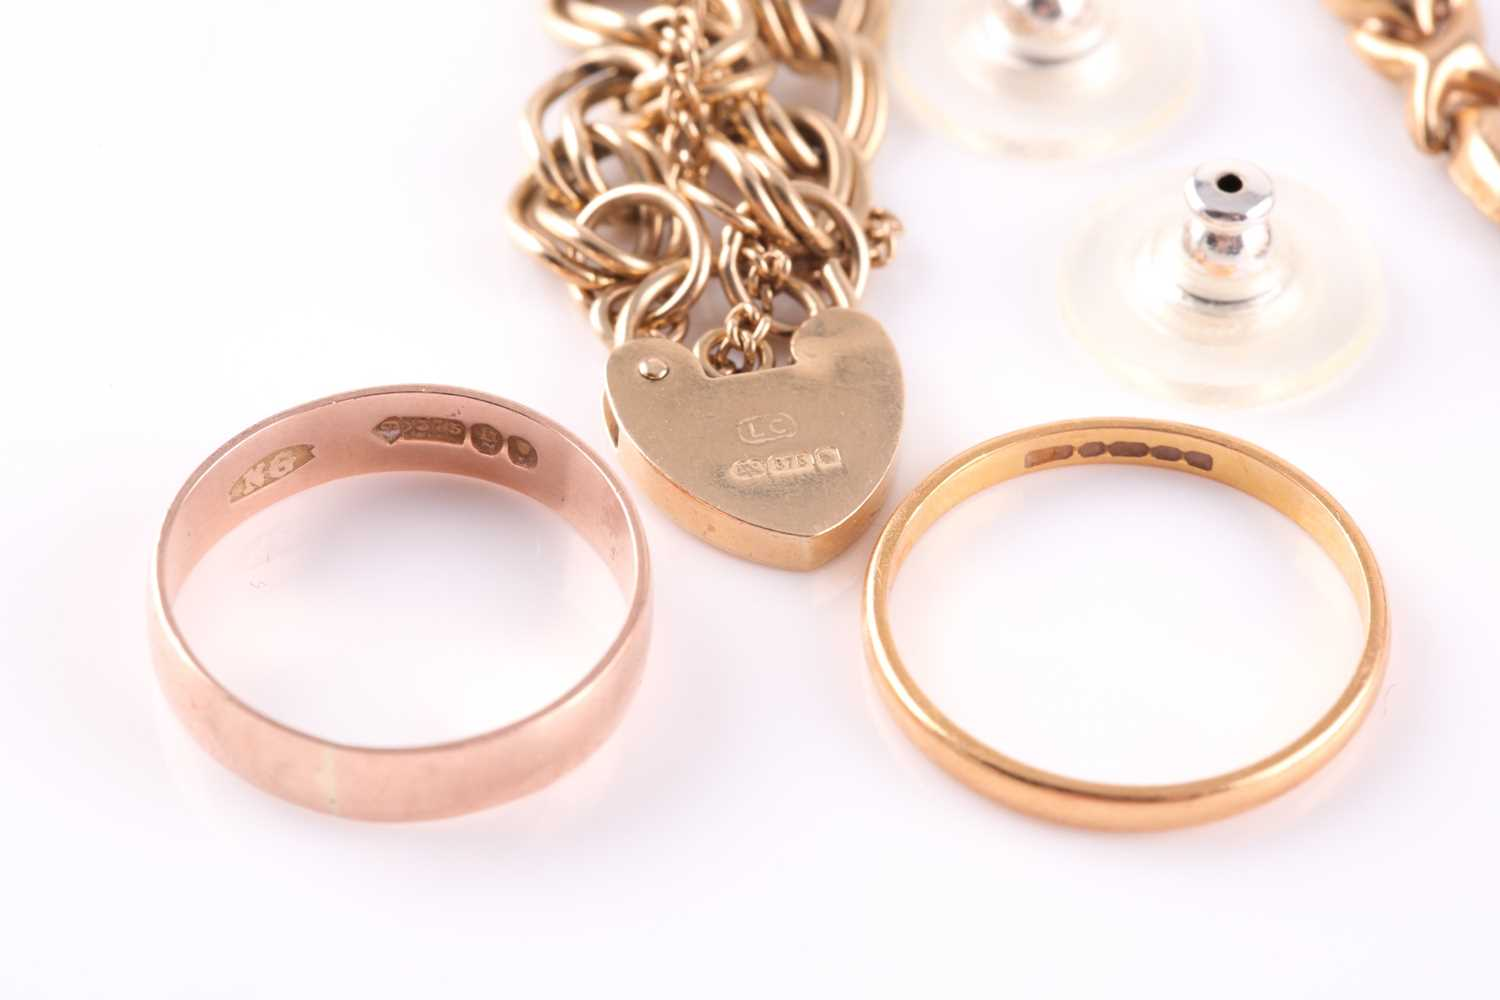 A 22ct gold wedding band; together with a 9ct gold wedding band; two chain link bracelets and a - Image 2 of 2